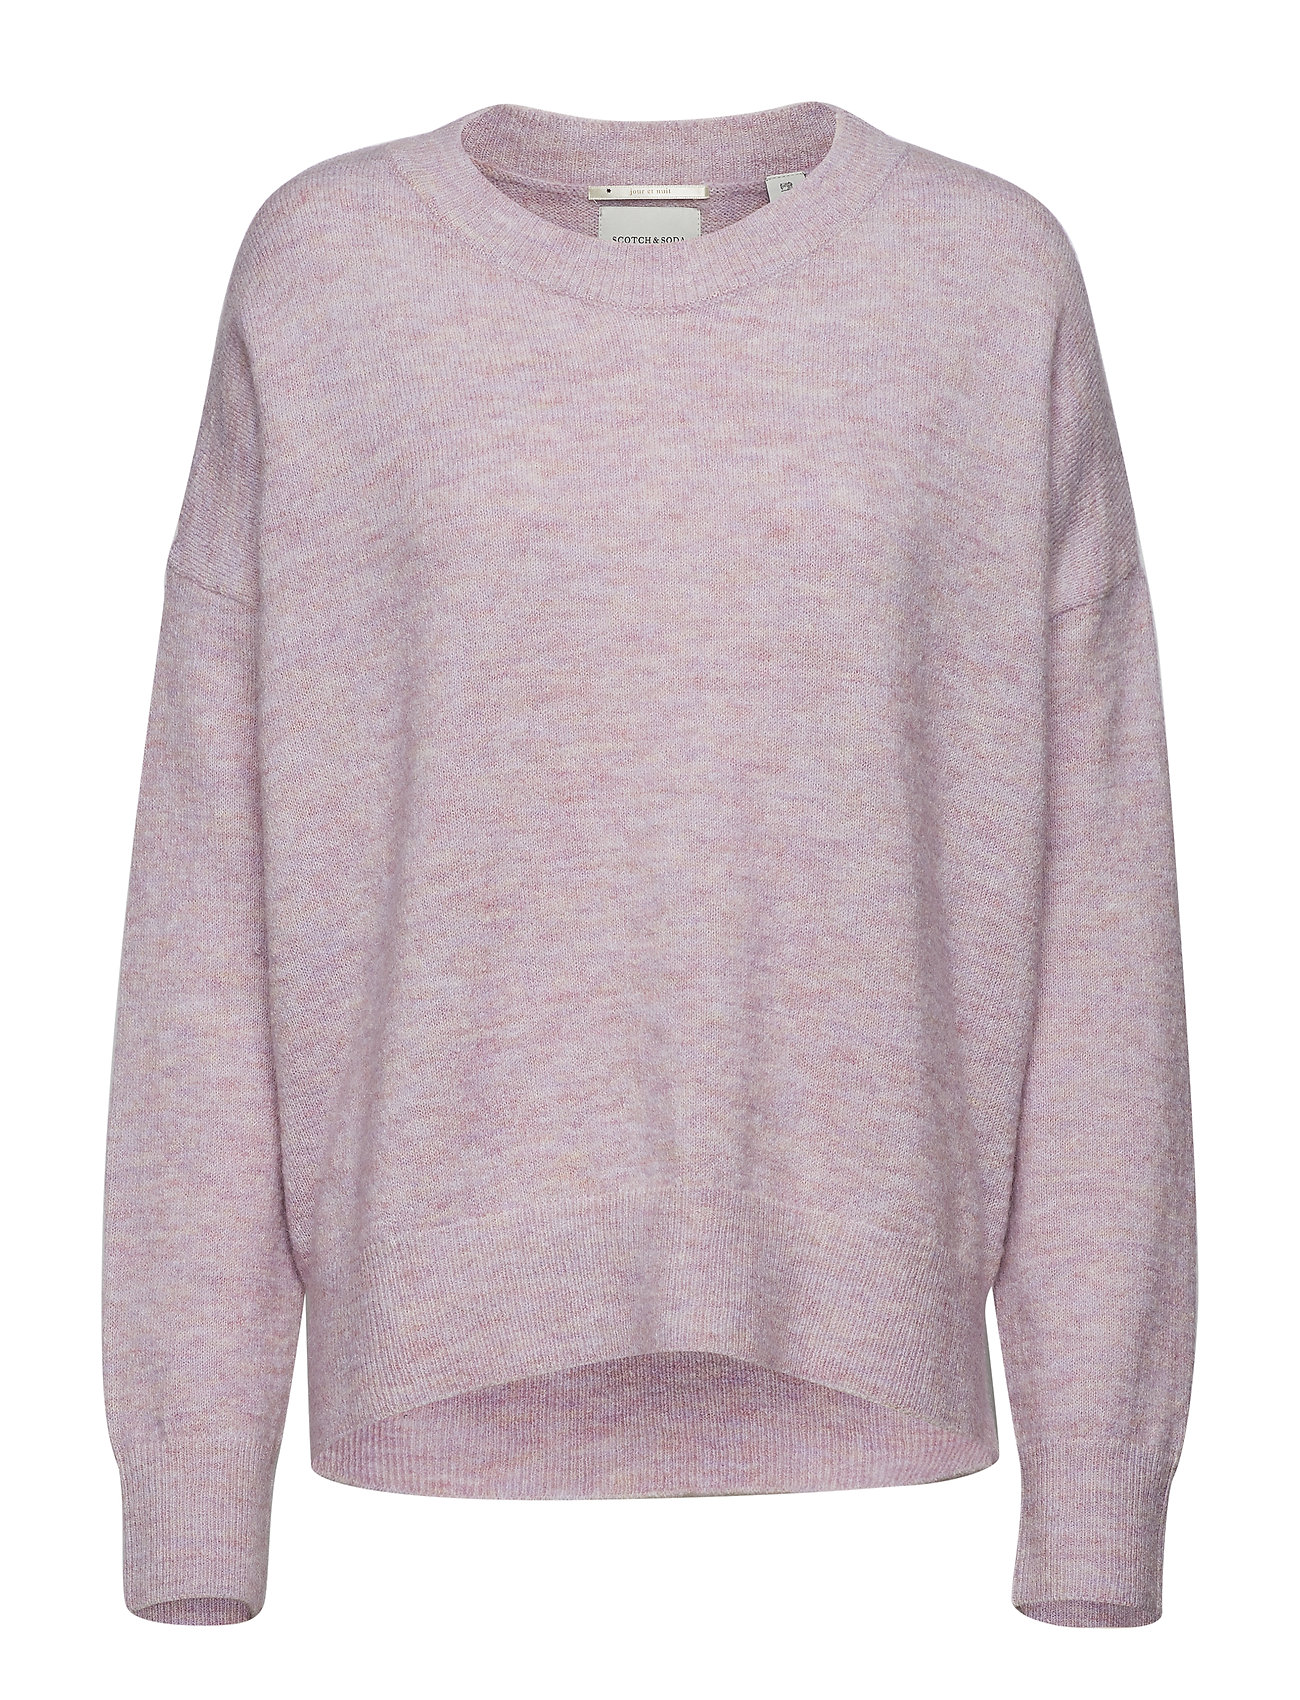 Scotch & Soda Basic crew neck in fluffy yarn - LILAC MELANGE